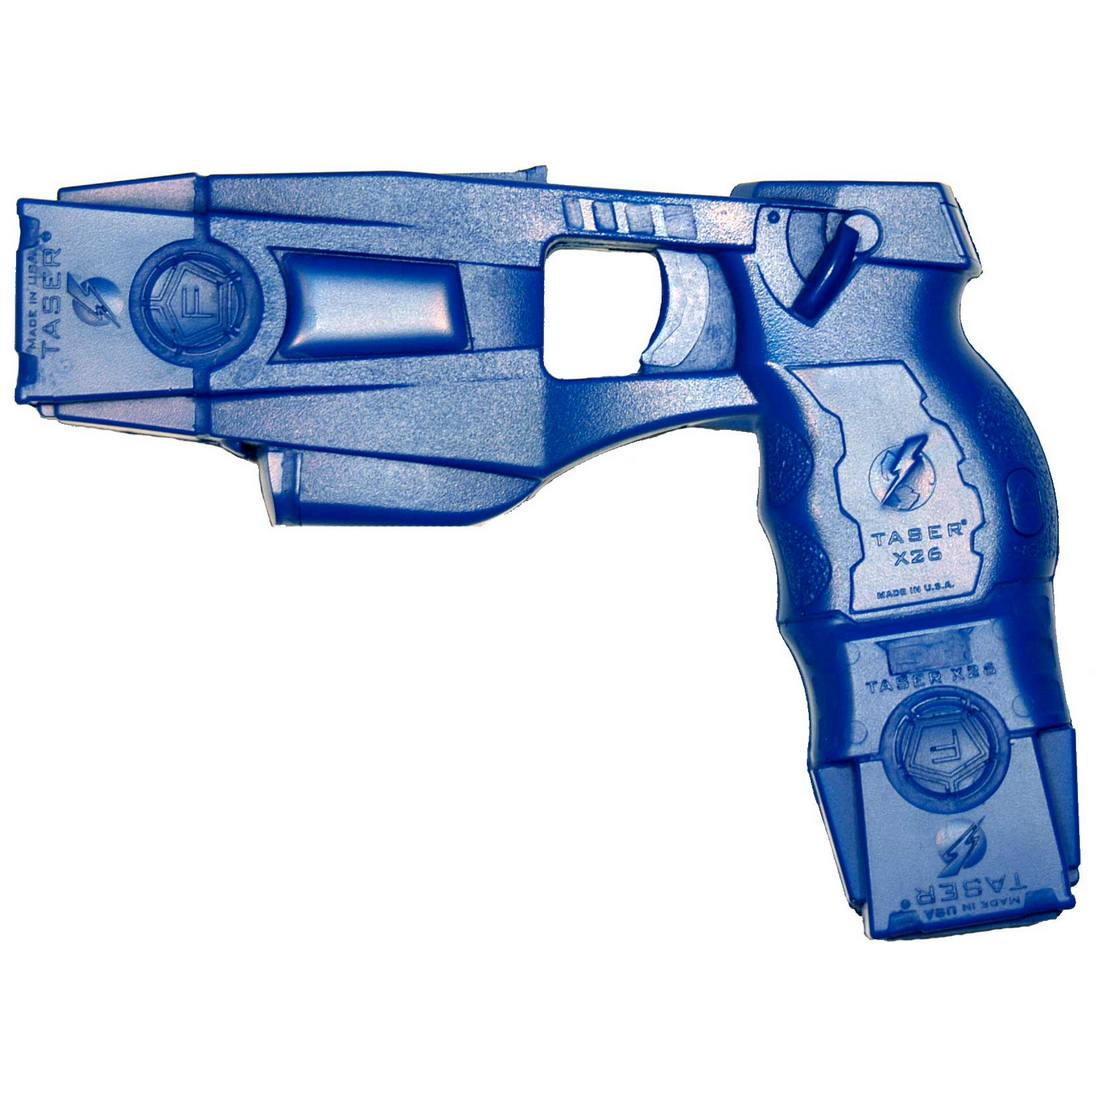 Blueguns FSX26XC Taser X26 W/Extra Cartridge